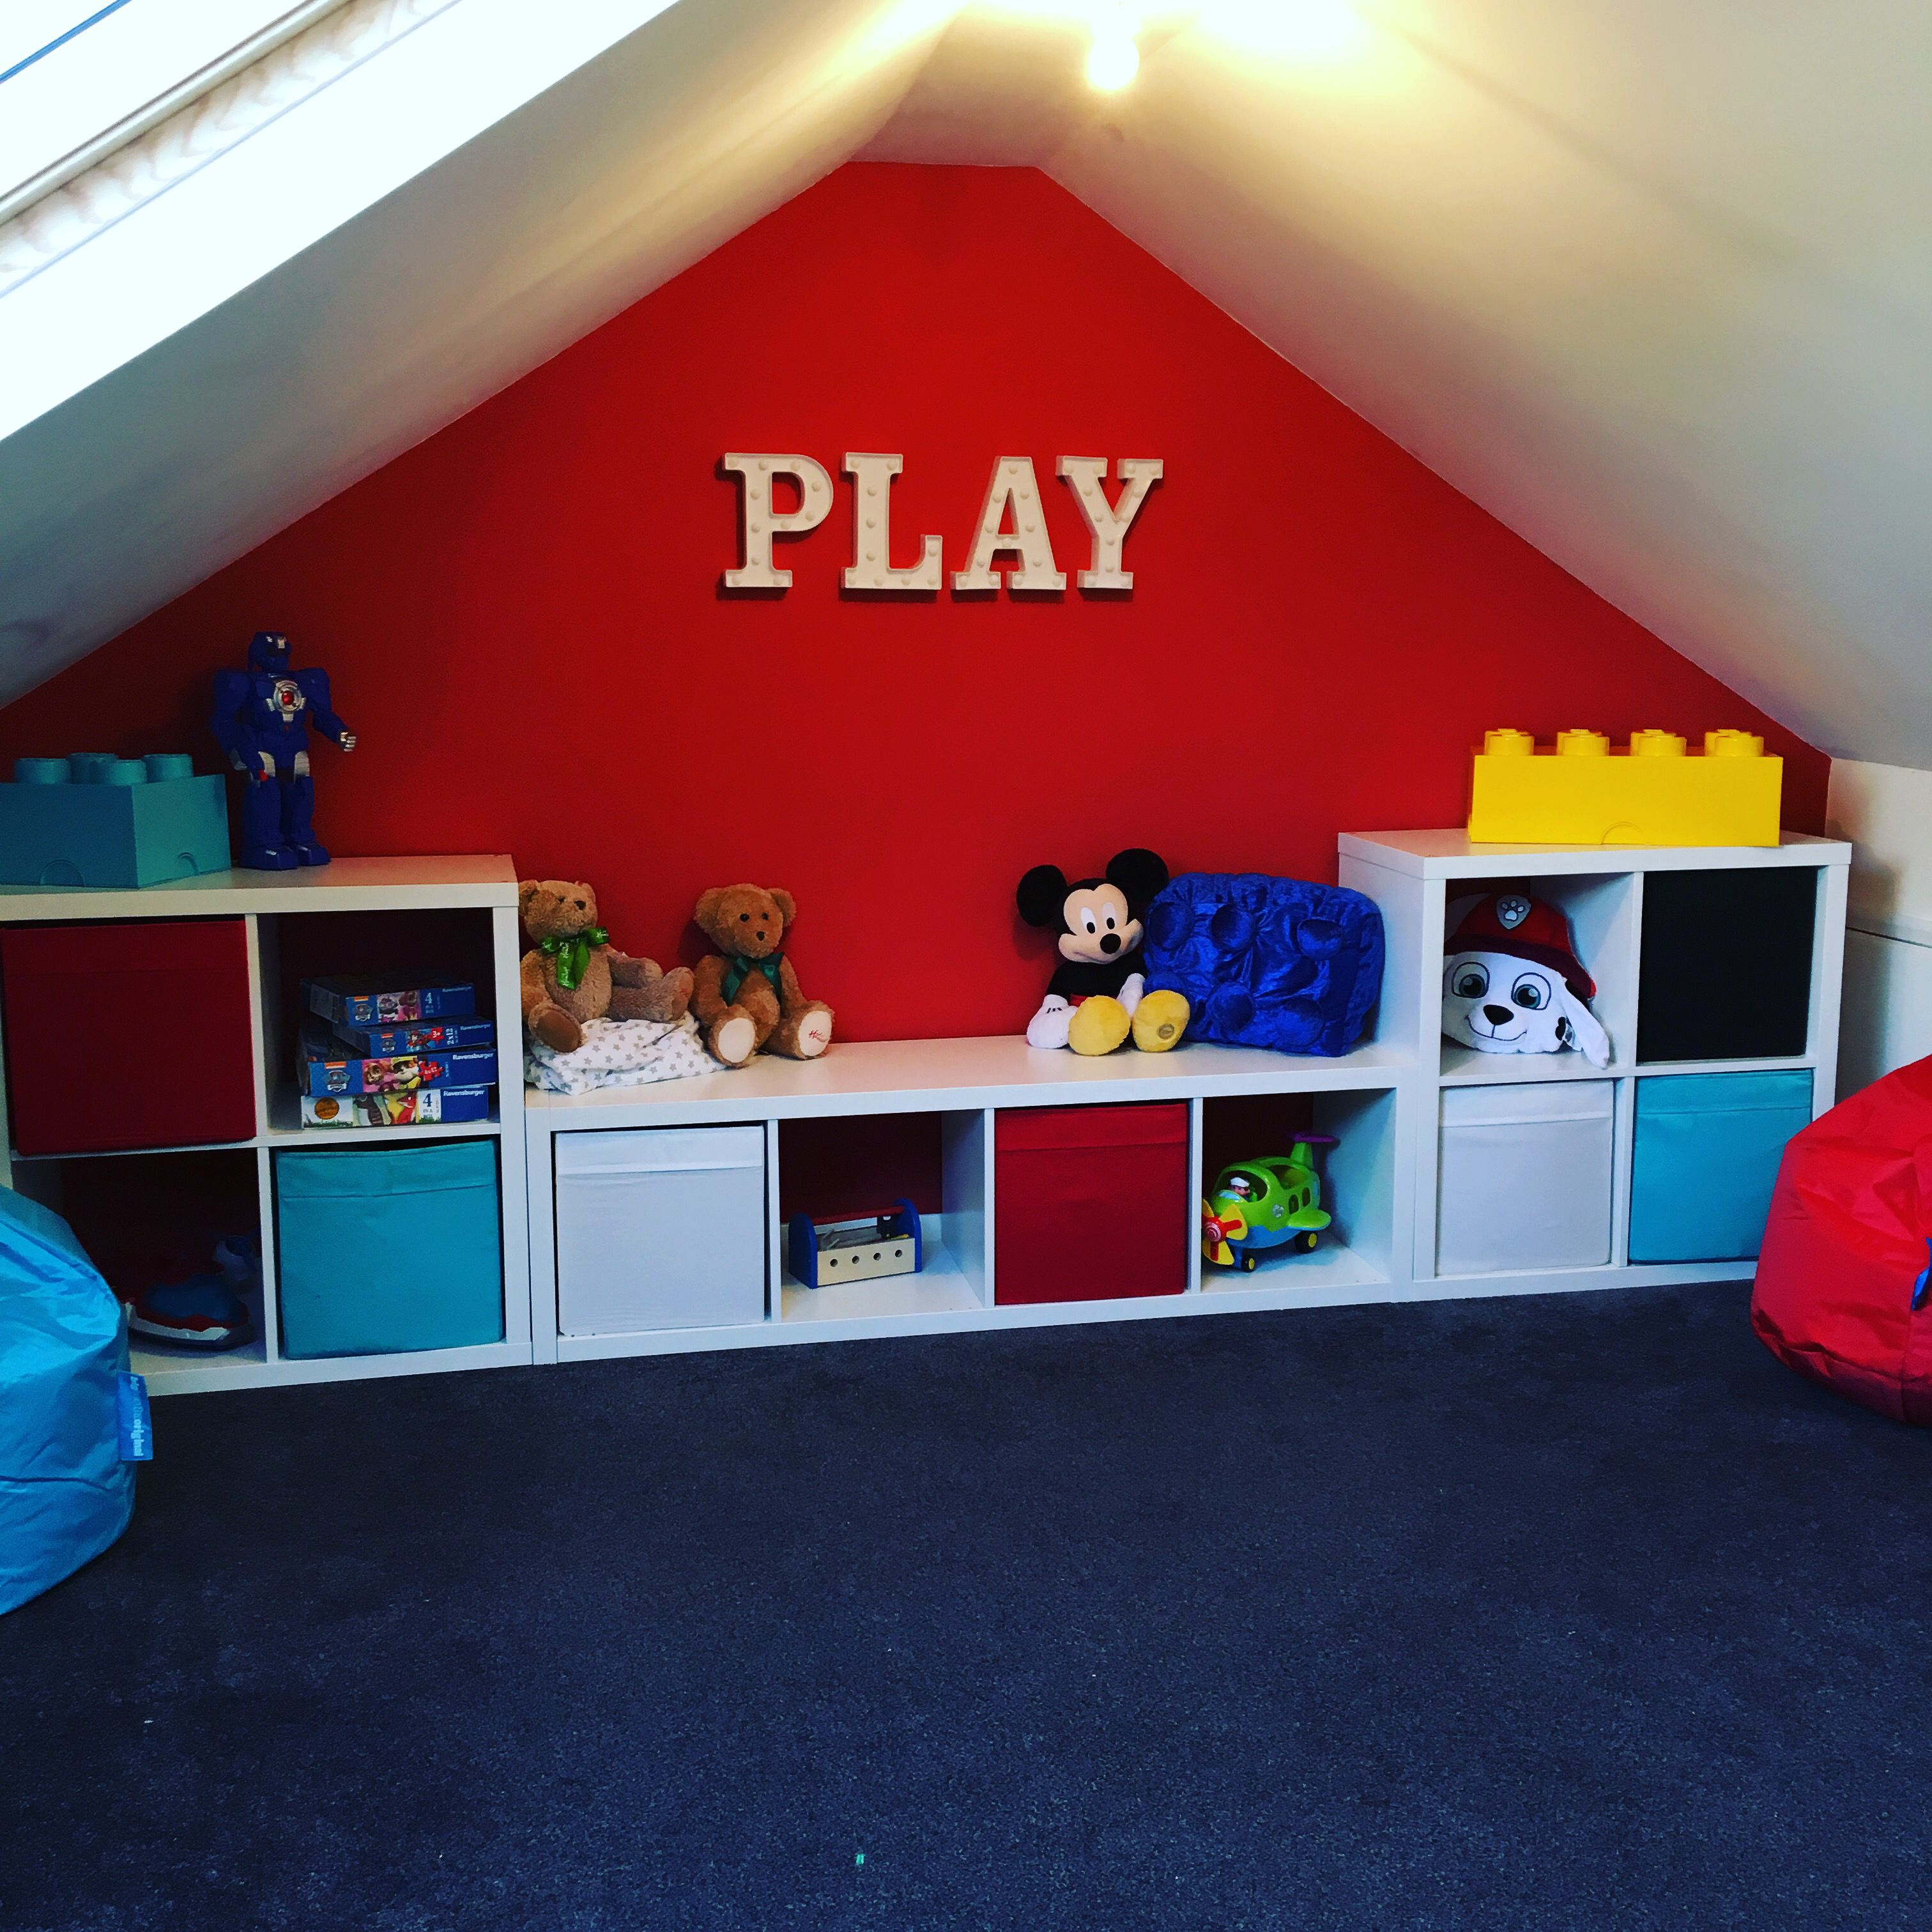 Remarkable Lego Inspired Playroom Ikeastorage Lego Led Letters From Uwap Interior Chair Design Uwaporg